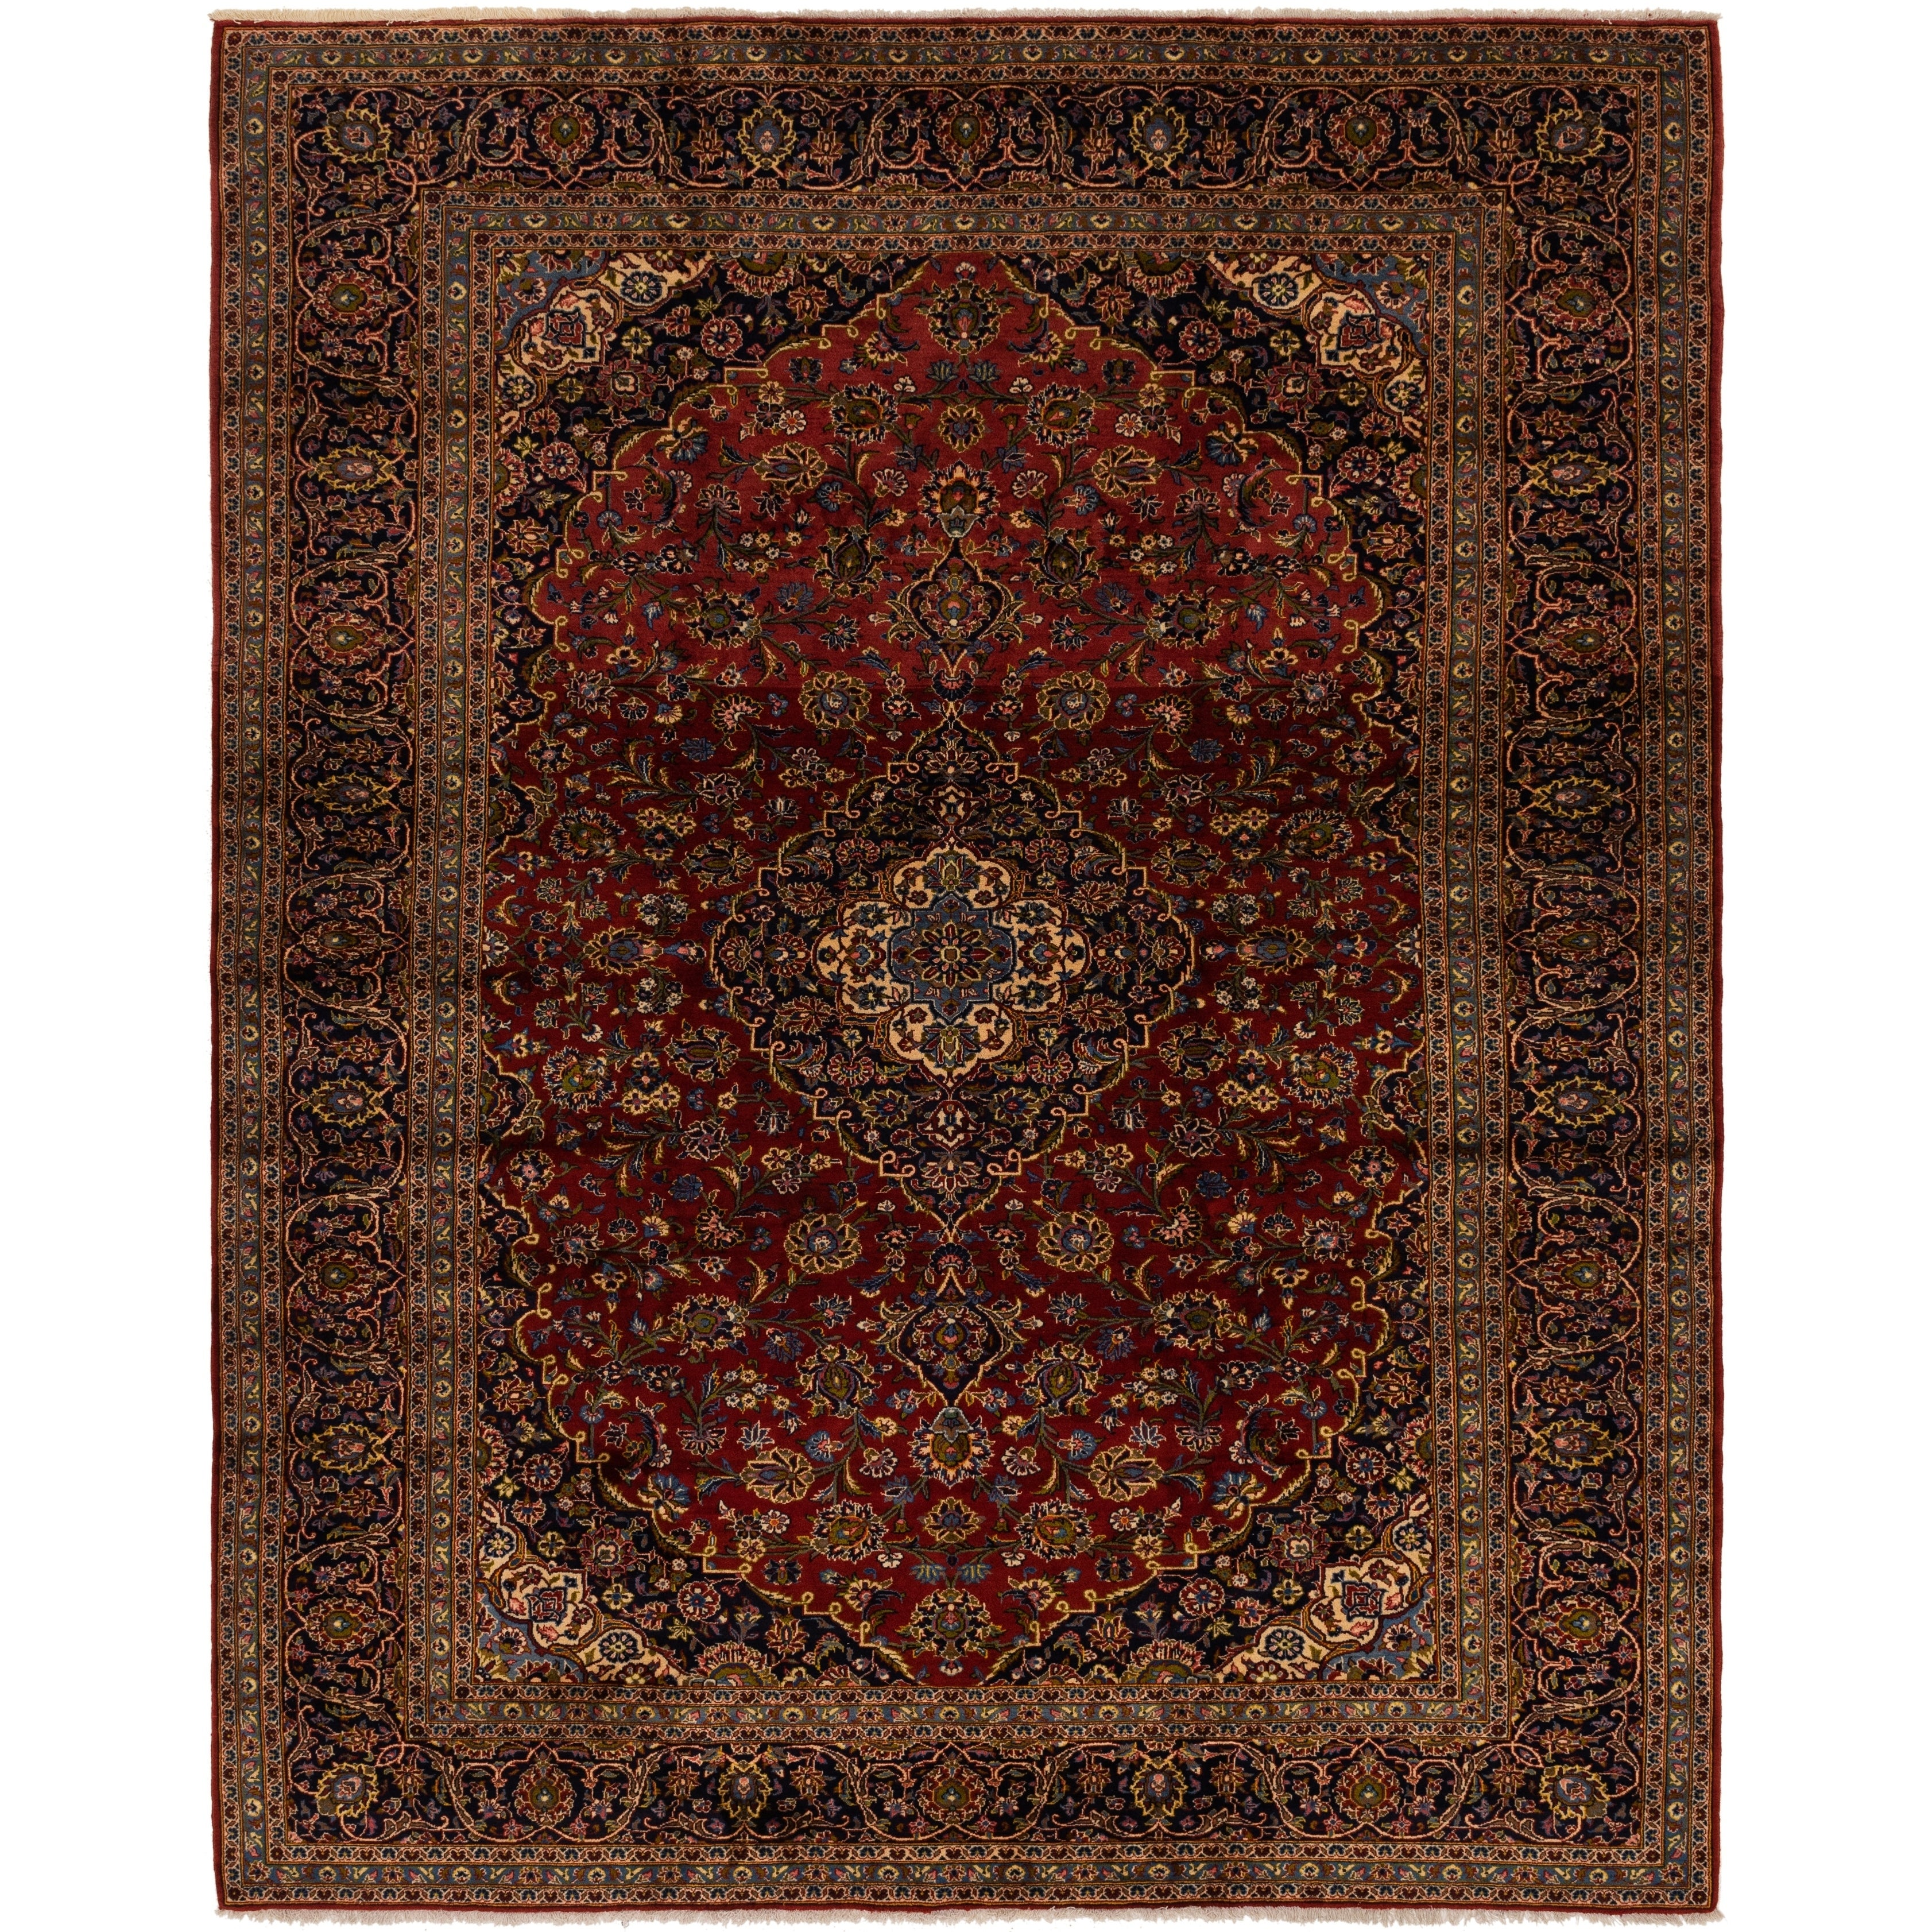 Hand Knotted Kashan Semi Antique Wool Area Rug - 9 10 x 12 5 (Red - 9 10 x 12 5)